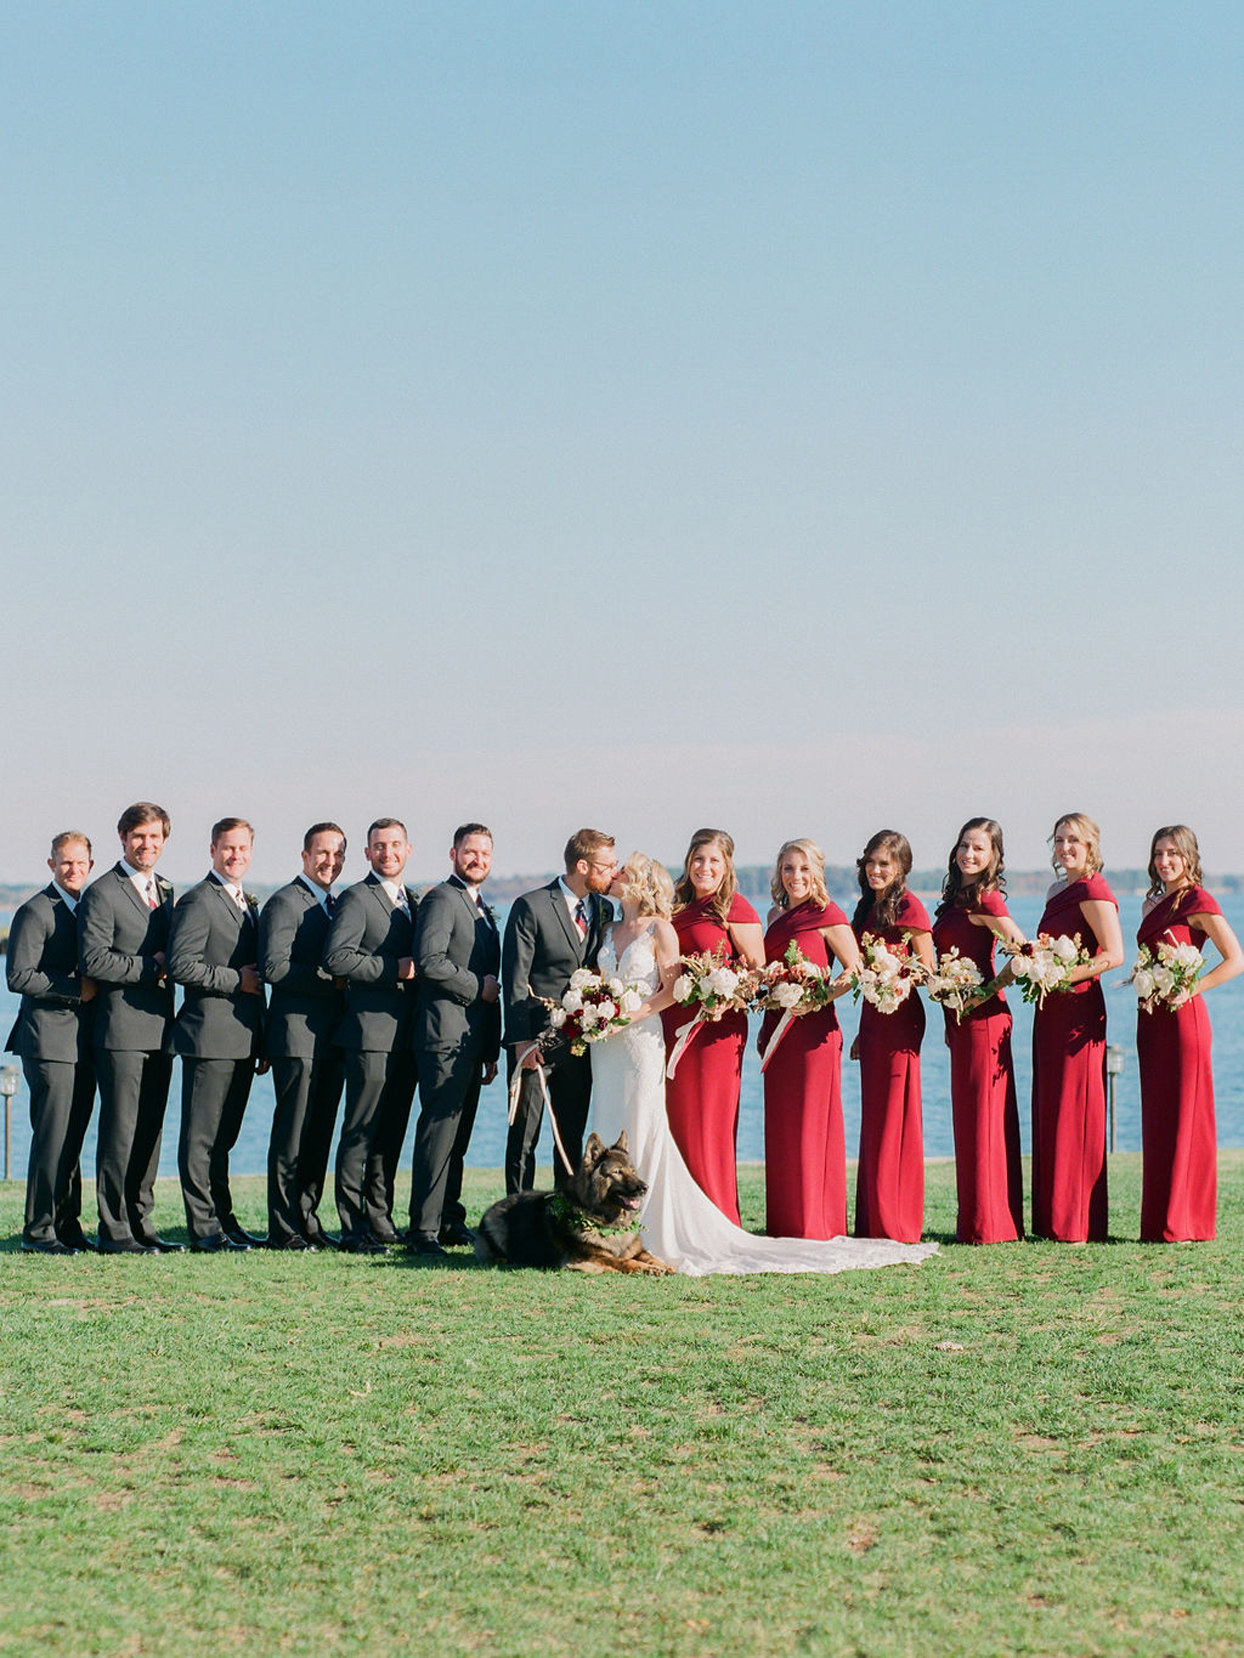 wedding party with bridesmaids in red dresses and groomsmen in black tuxes